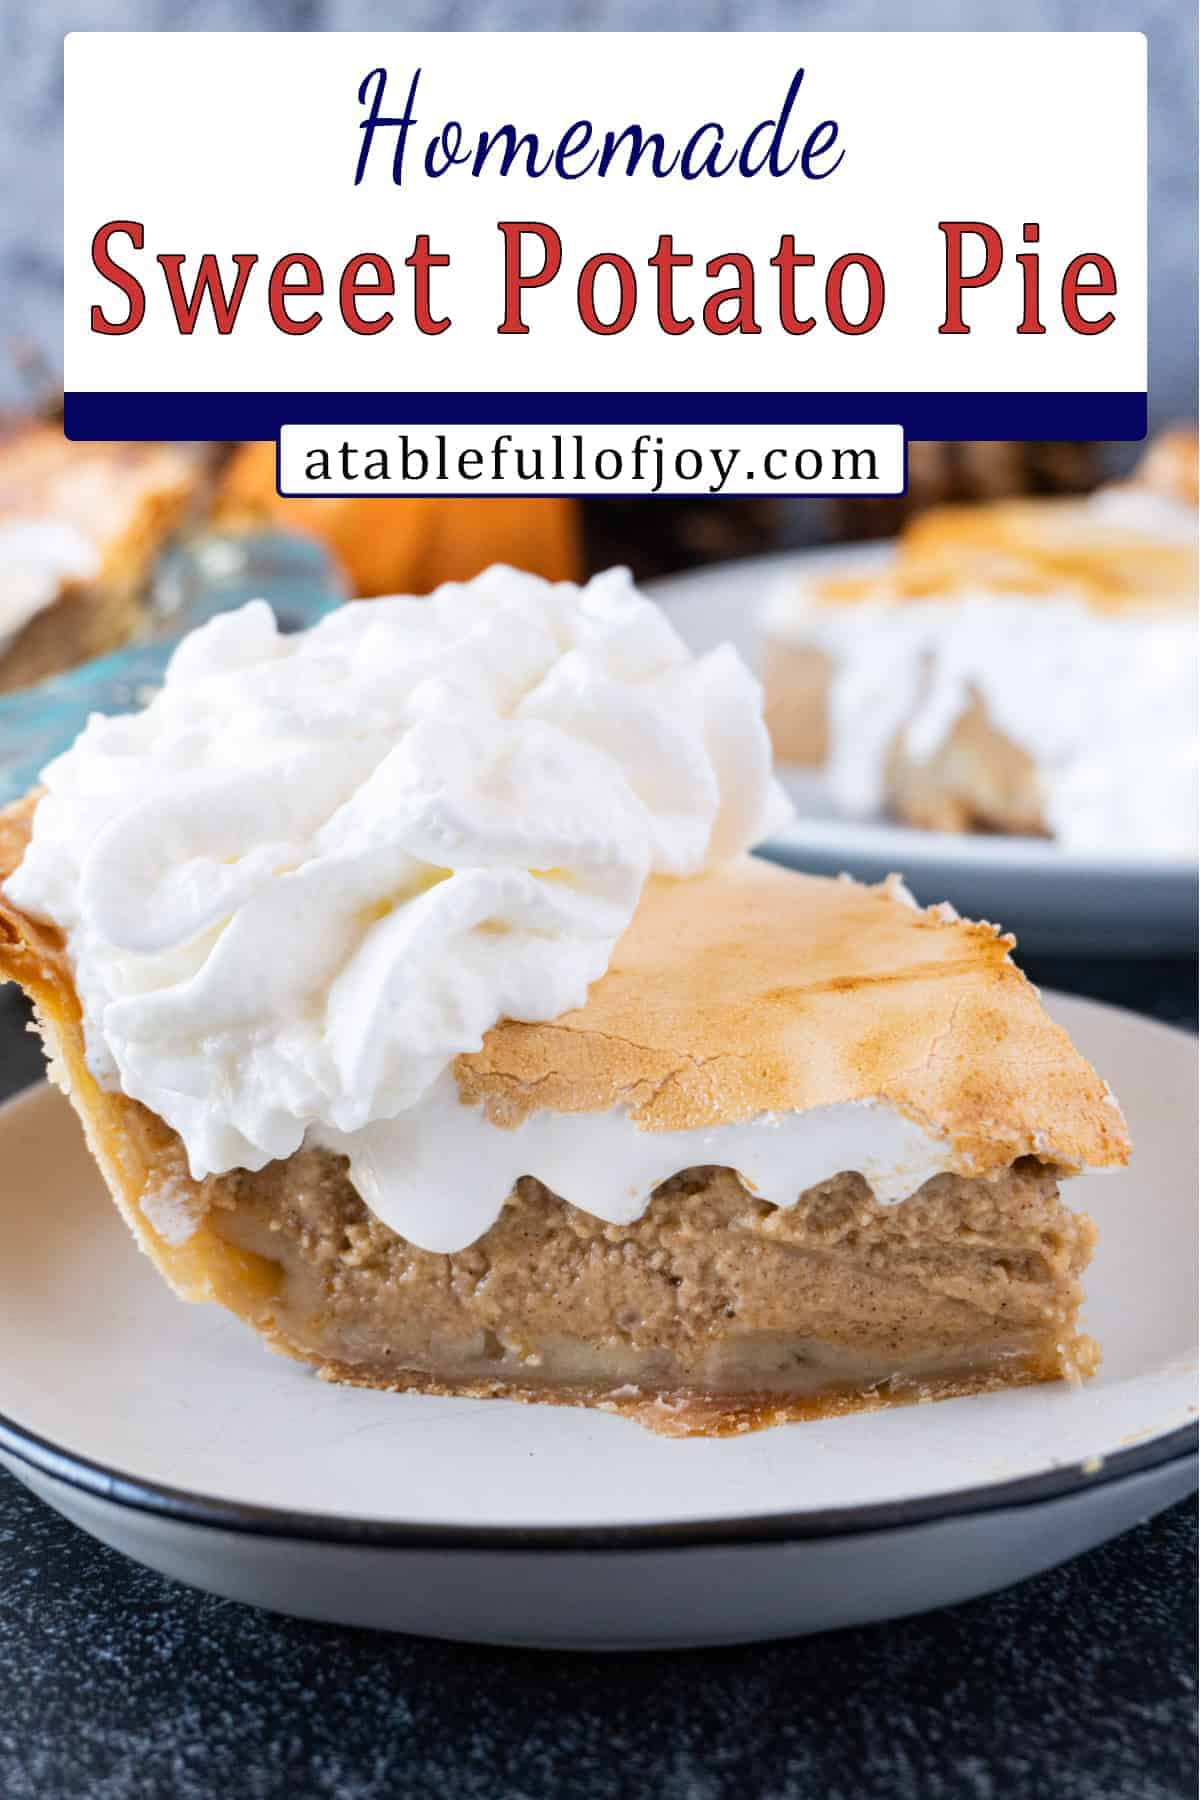 Sweet Potato Pie Pinterest Pin